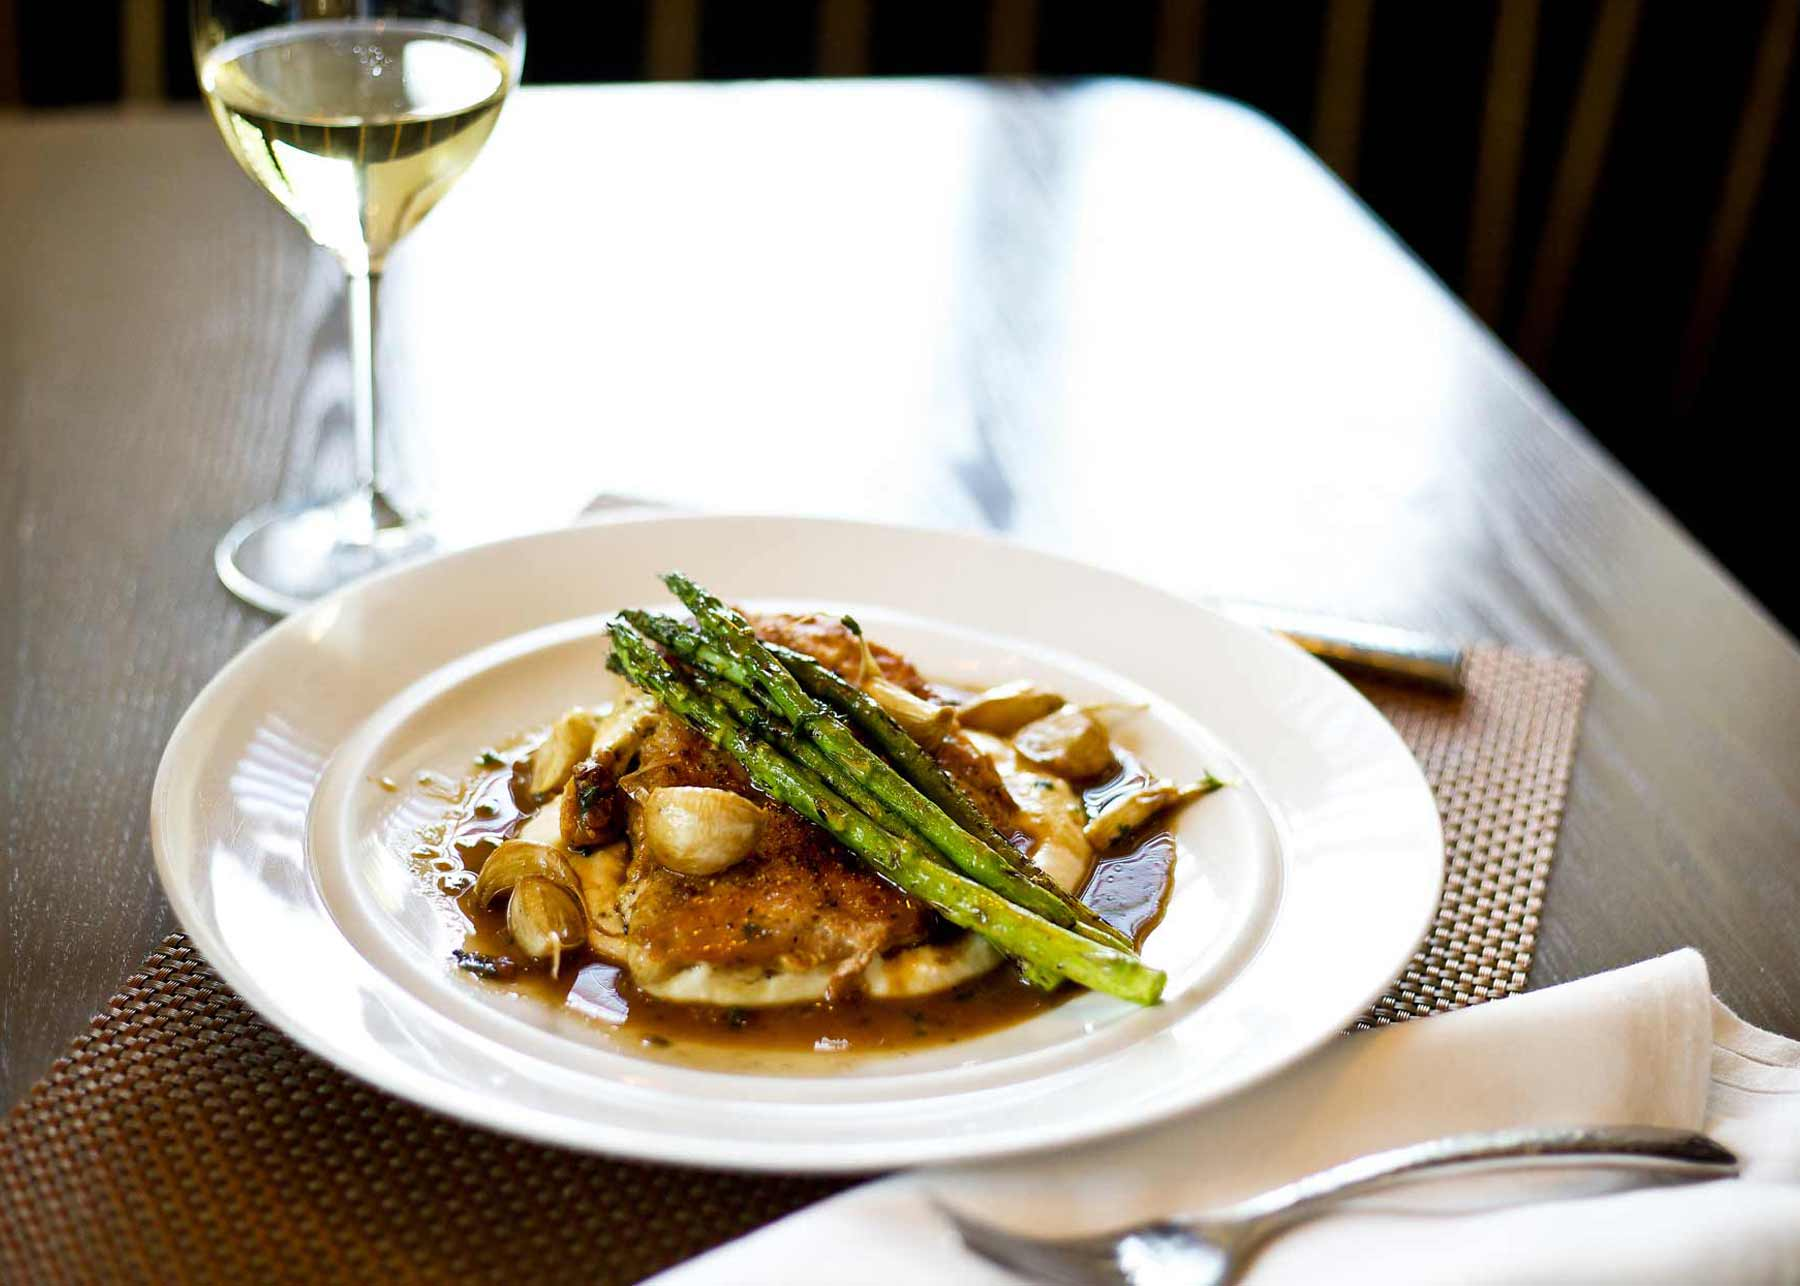 a dinner plate of chicken, potatoes and asparagus with a glass of white wine